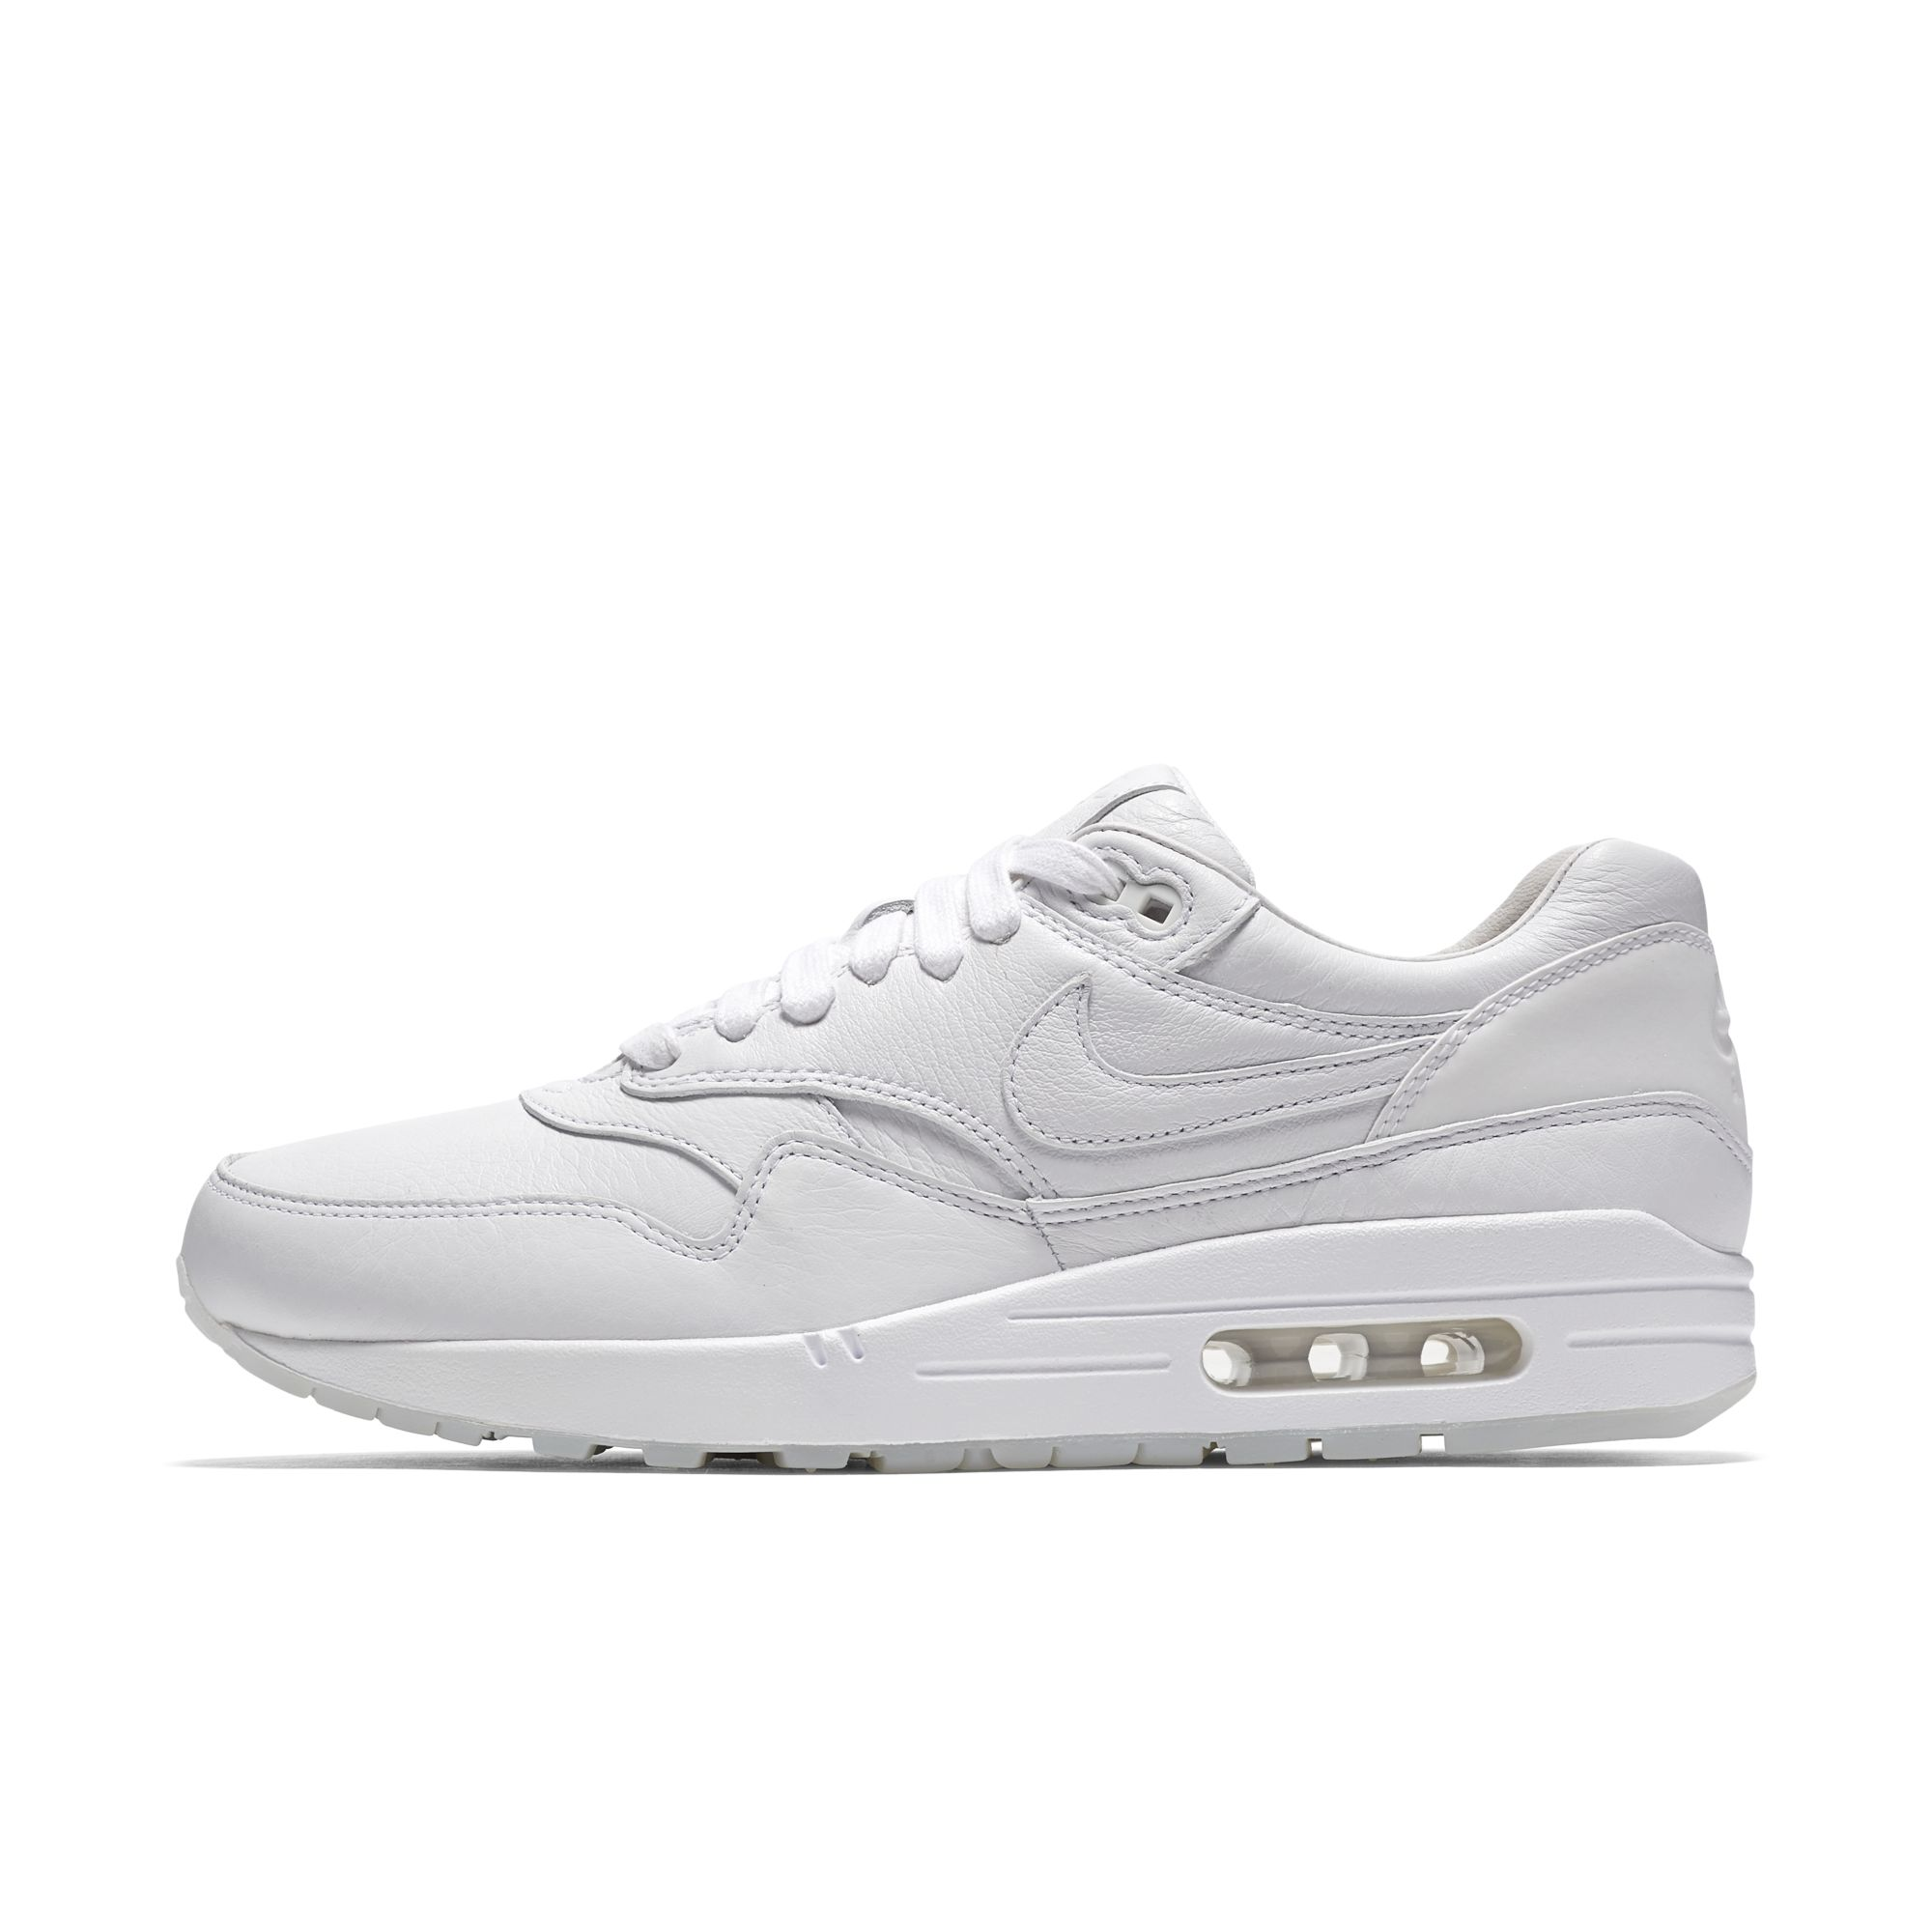 Air Max 1 Pinnacle - White - Side